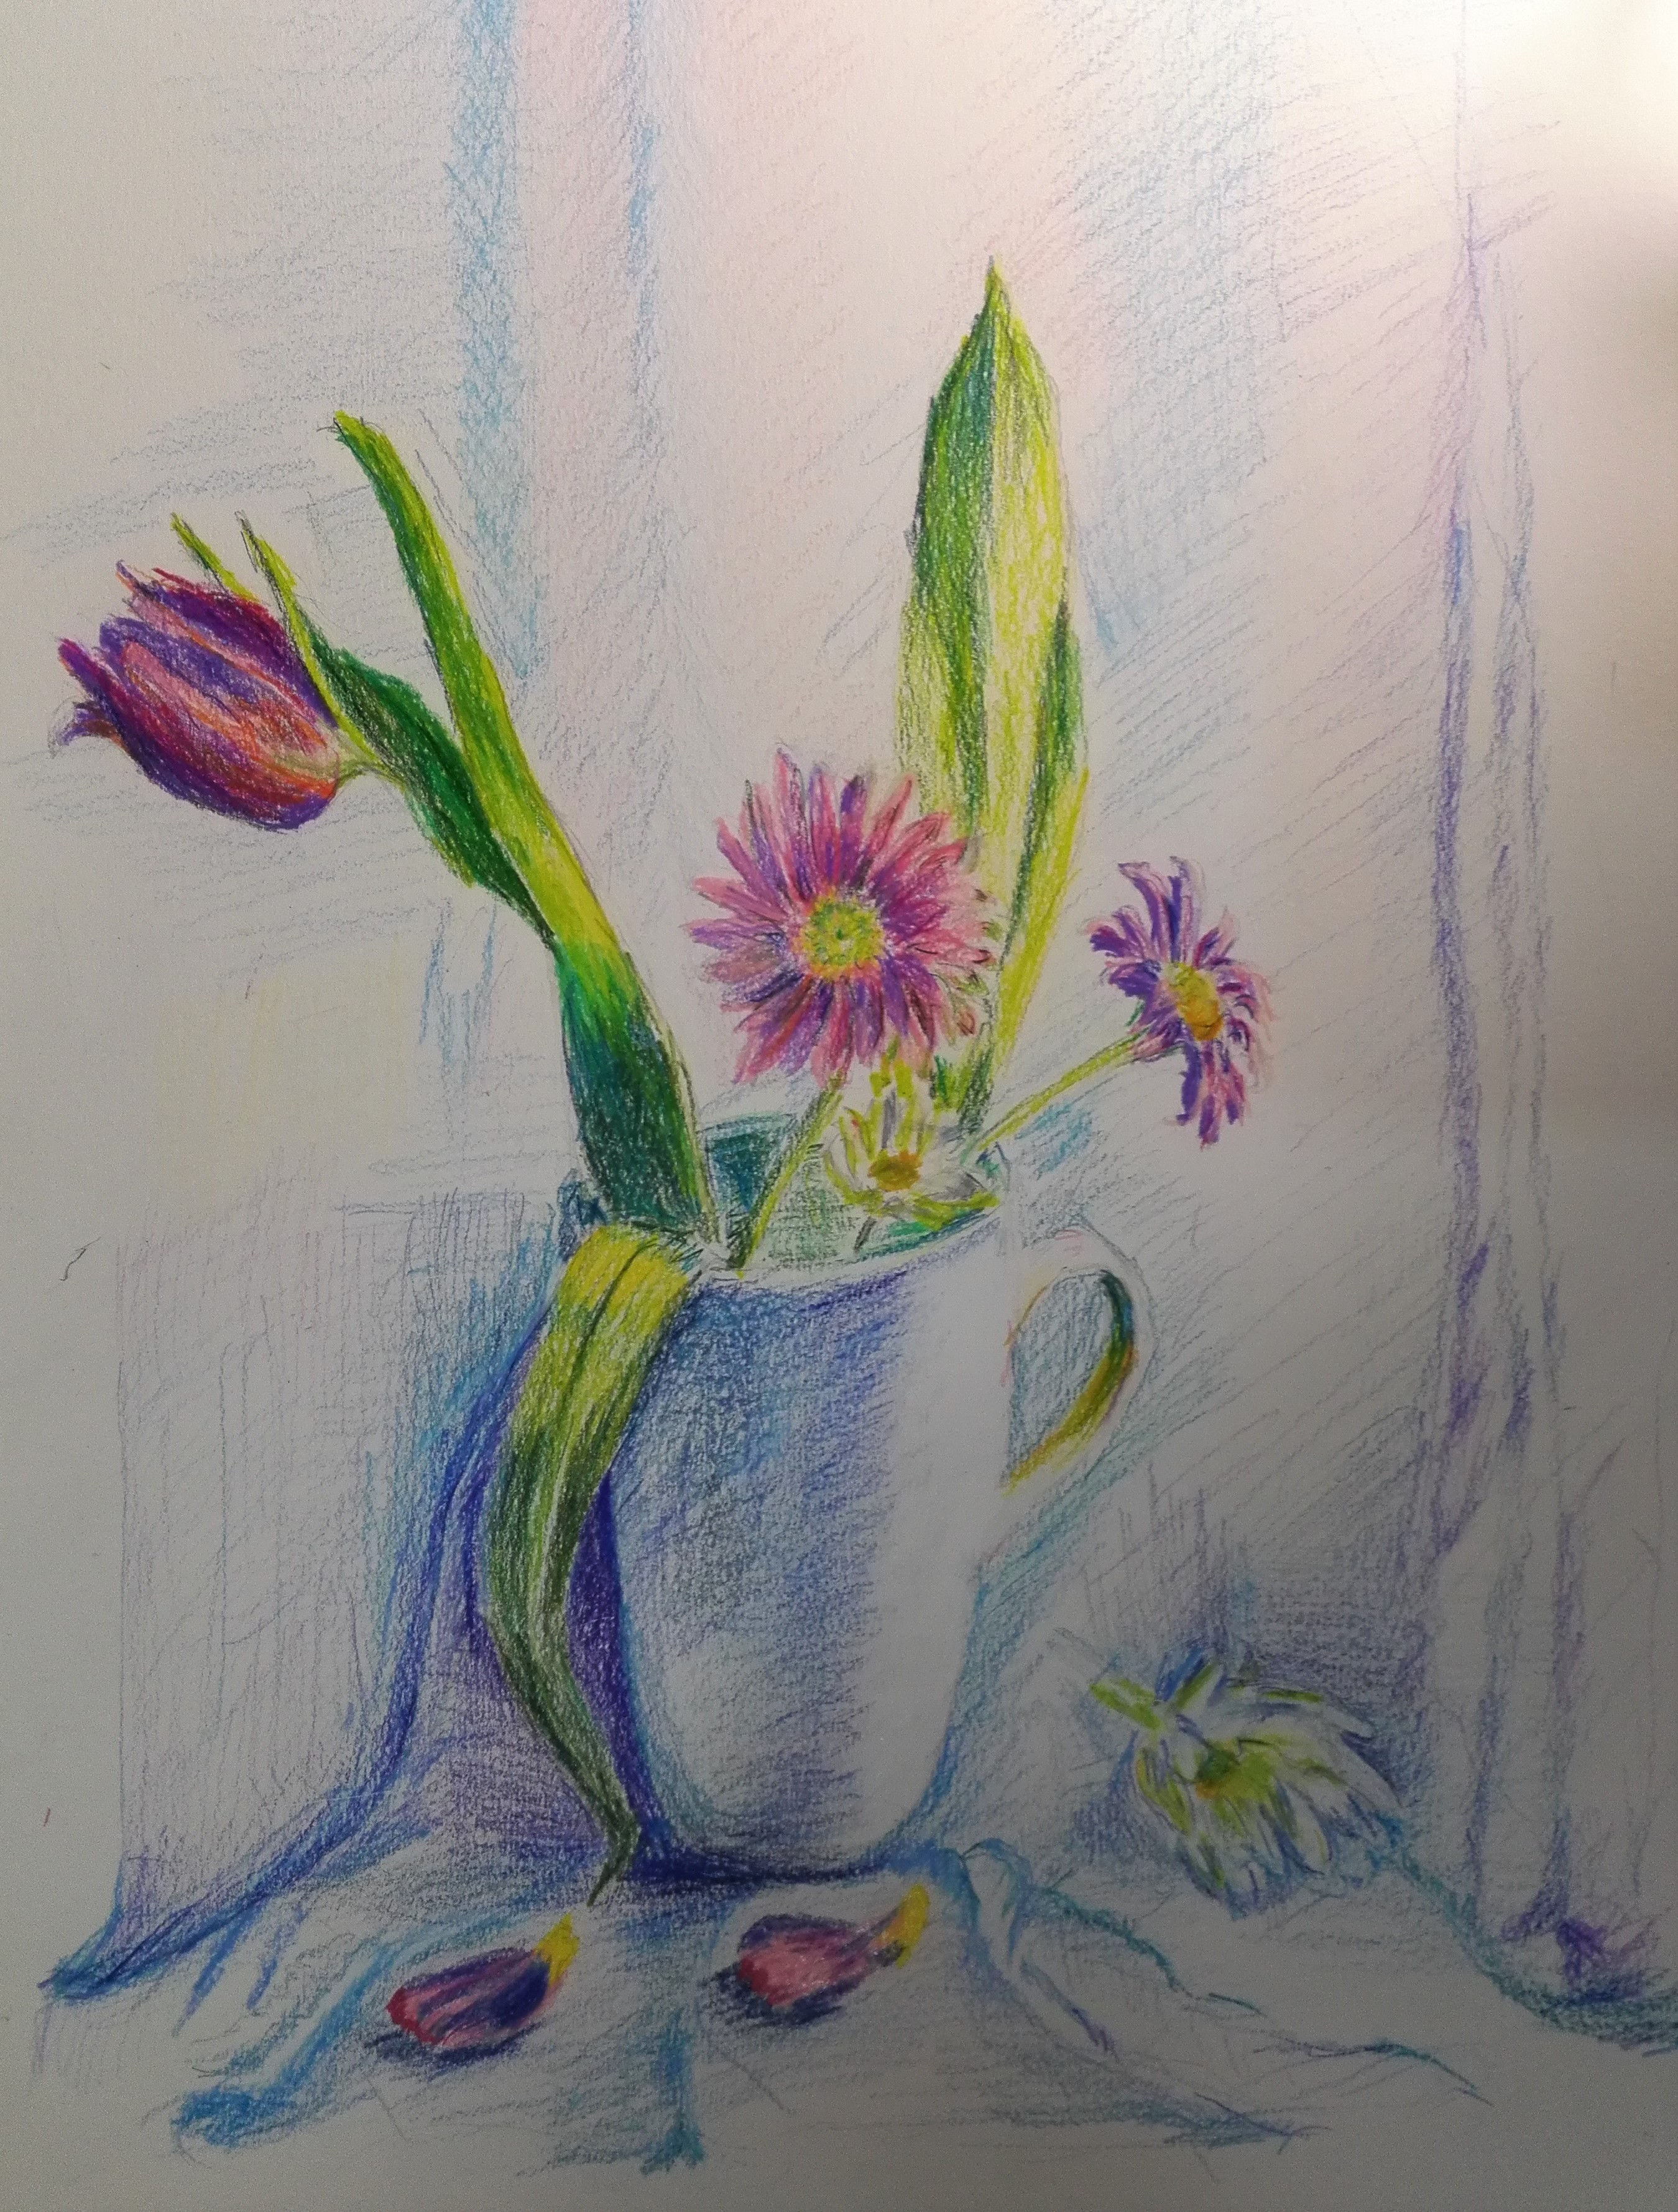 Colour pencils drawing of a floral still life by a beginner student at Fundamental Art skills course in Kidderminster